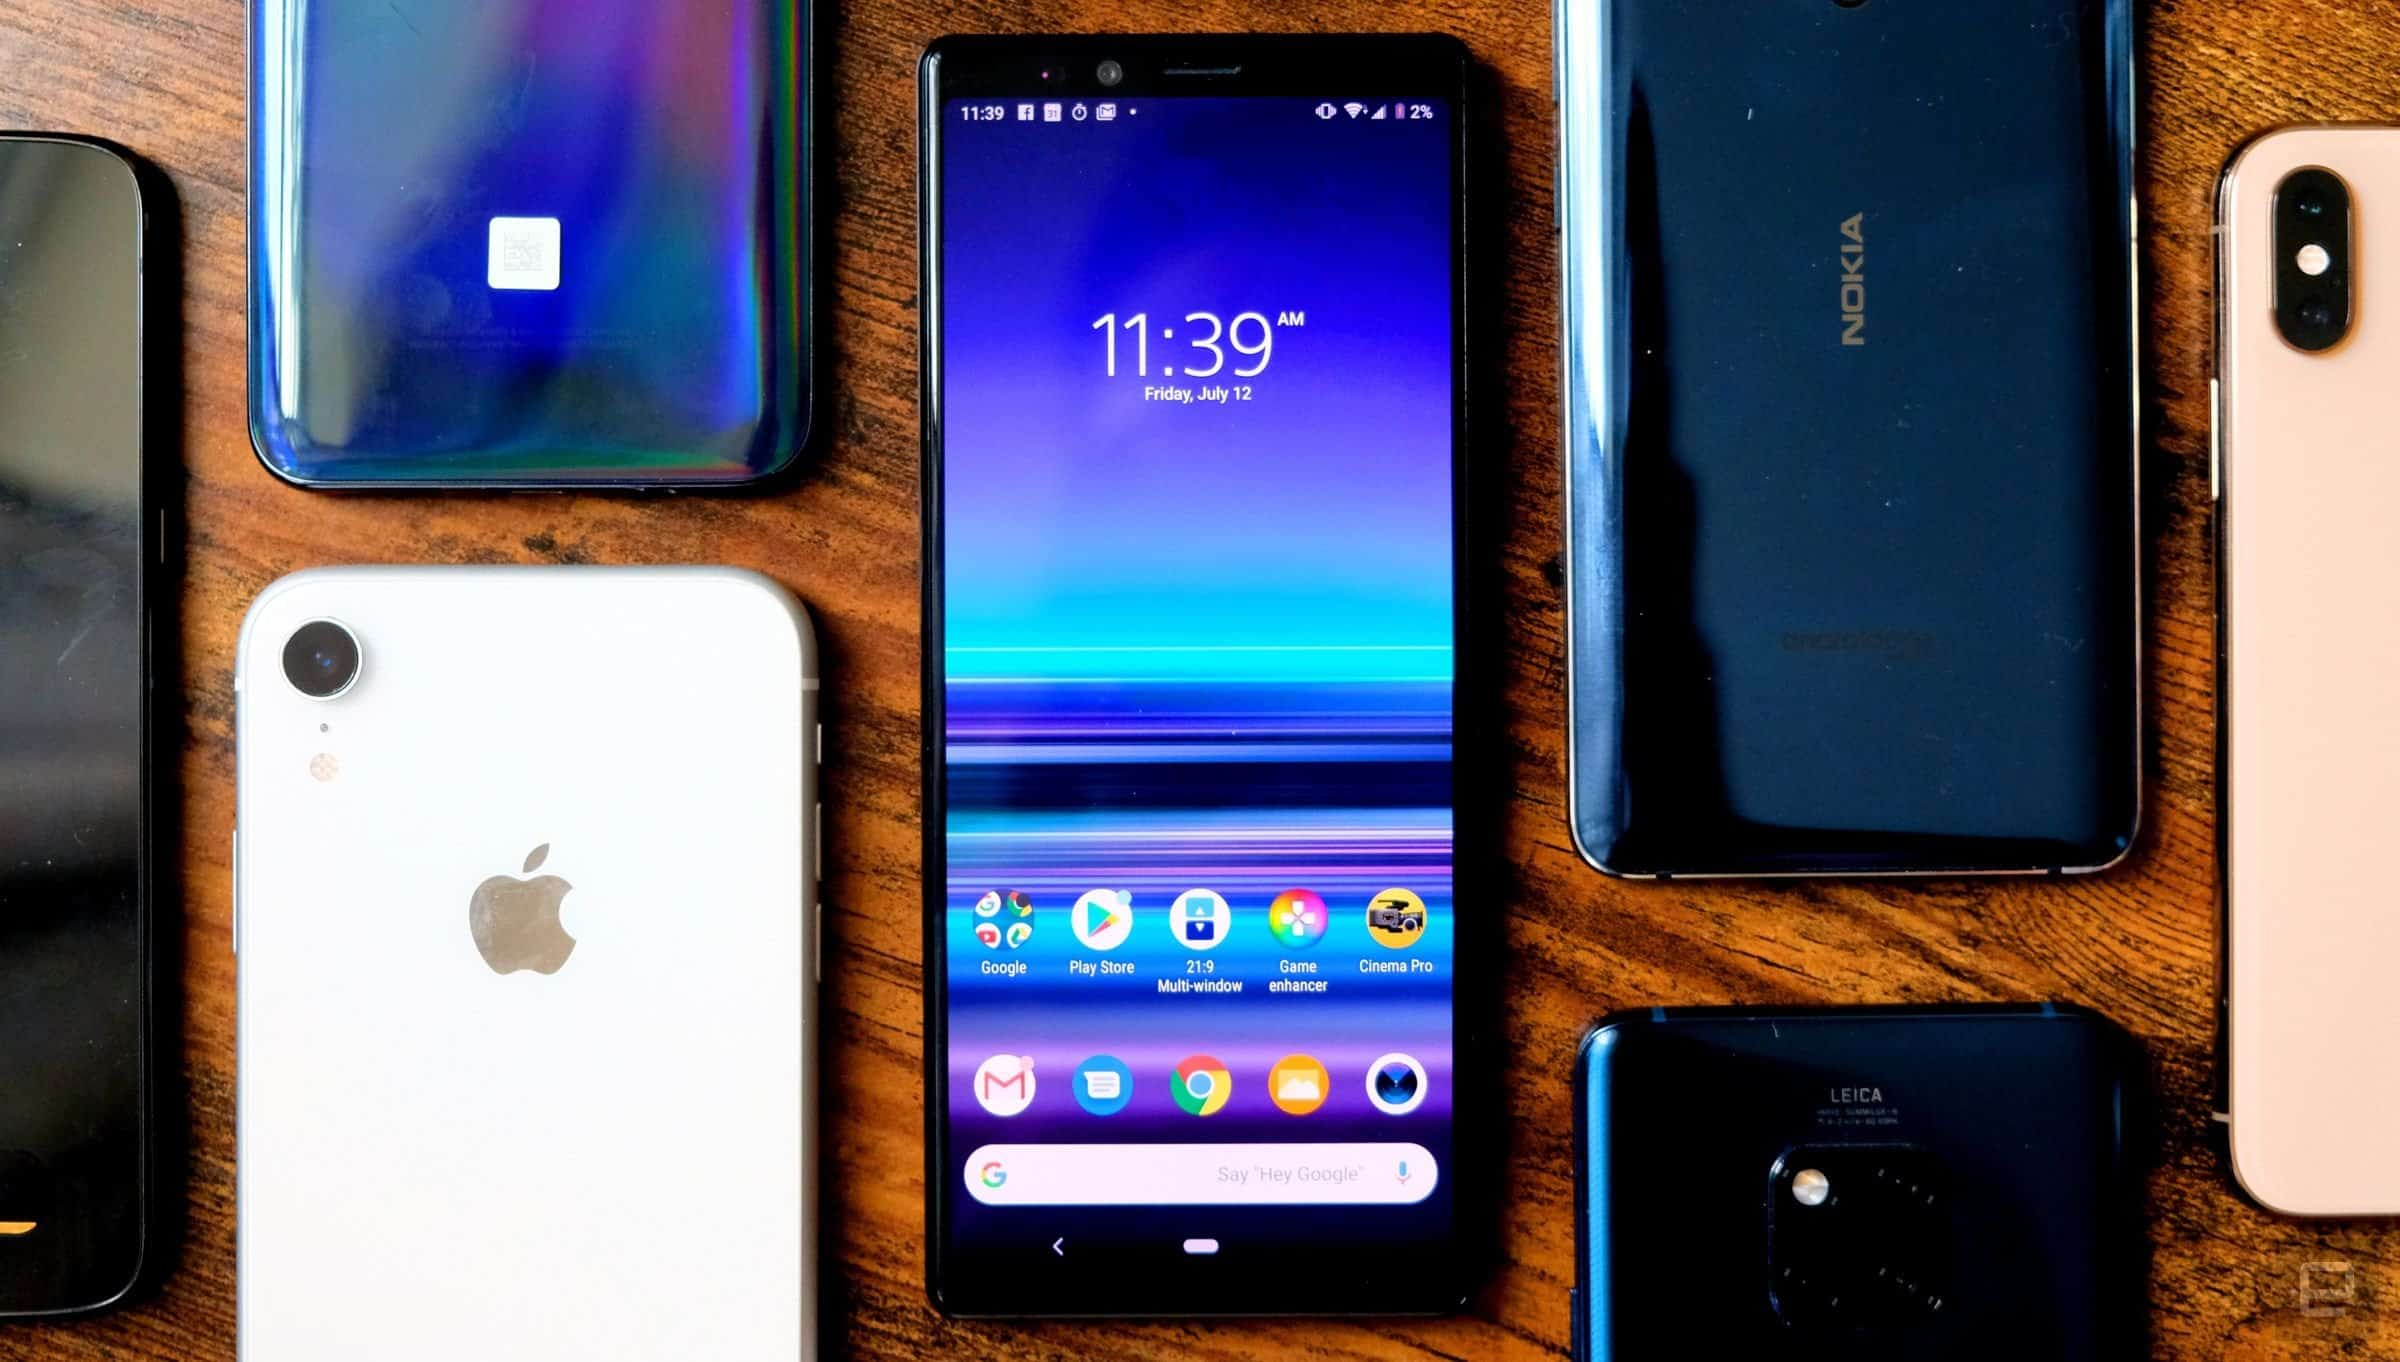 Upcoming Xperia phone could beat Apple's iPhone 11 in terms of performance 1